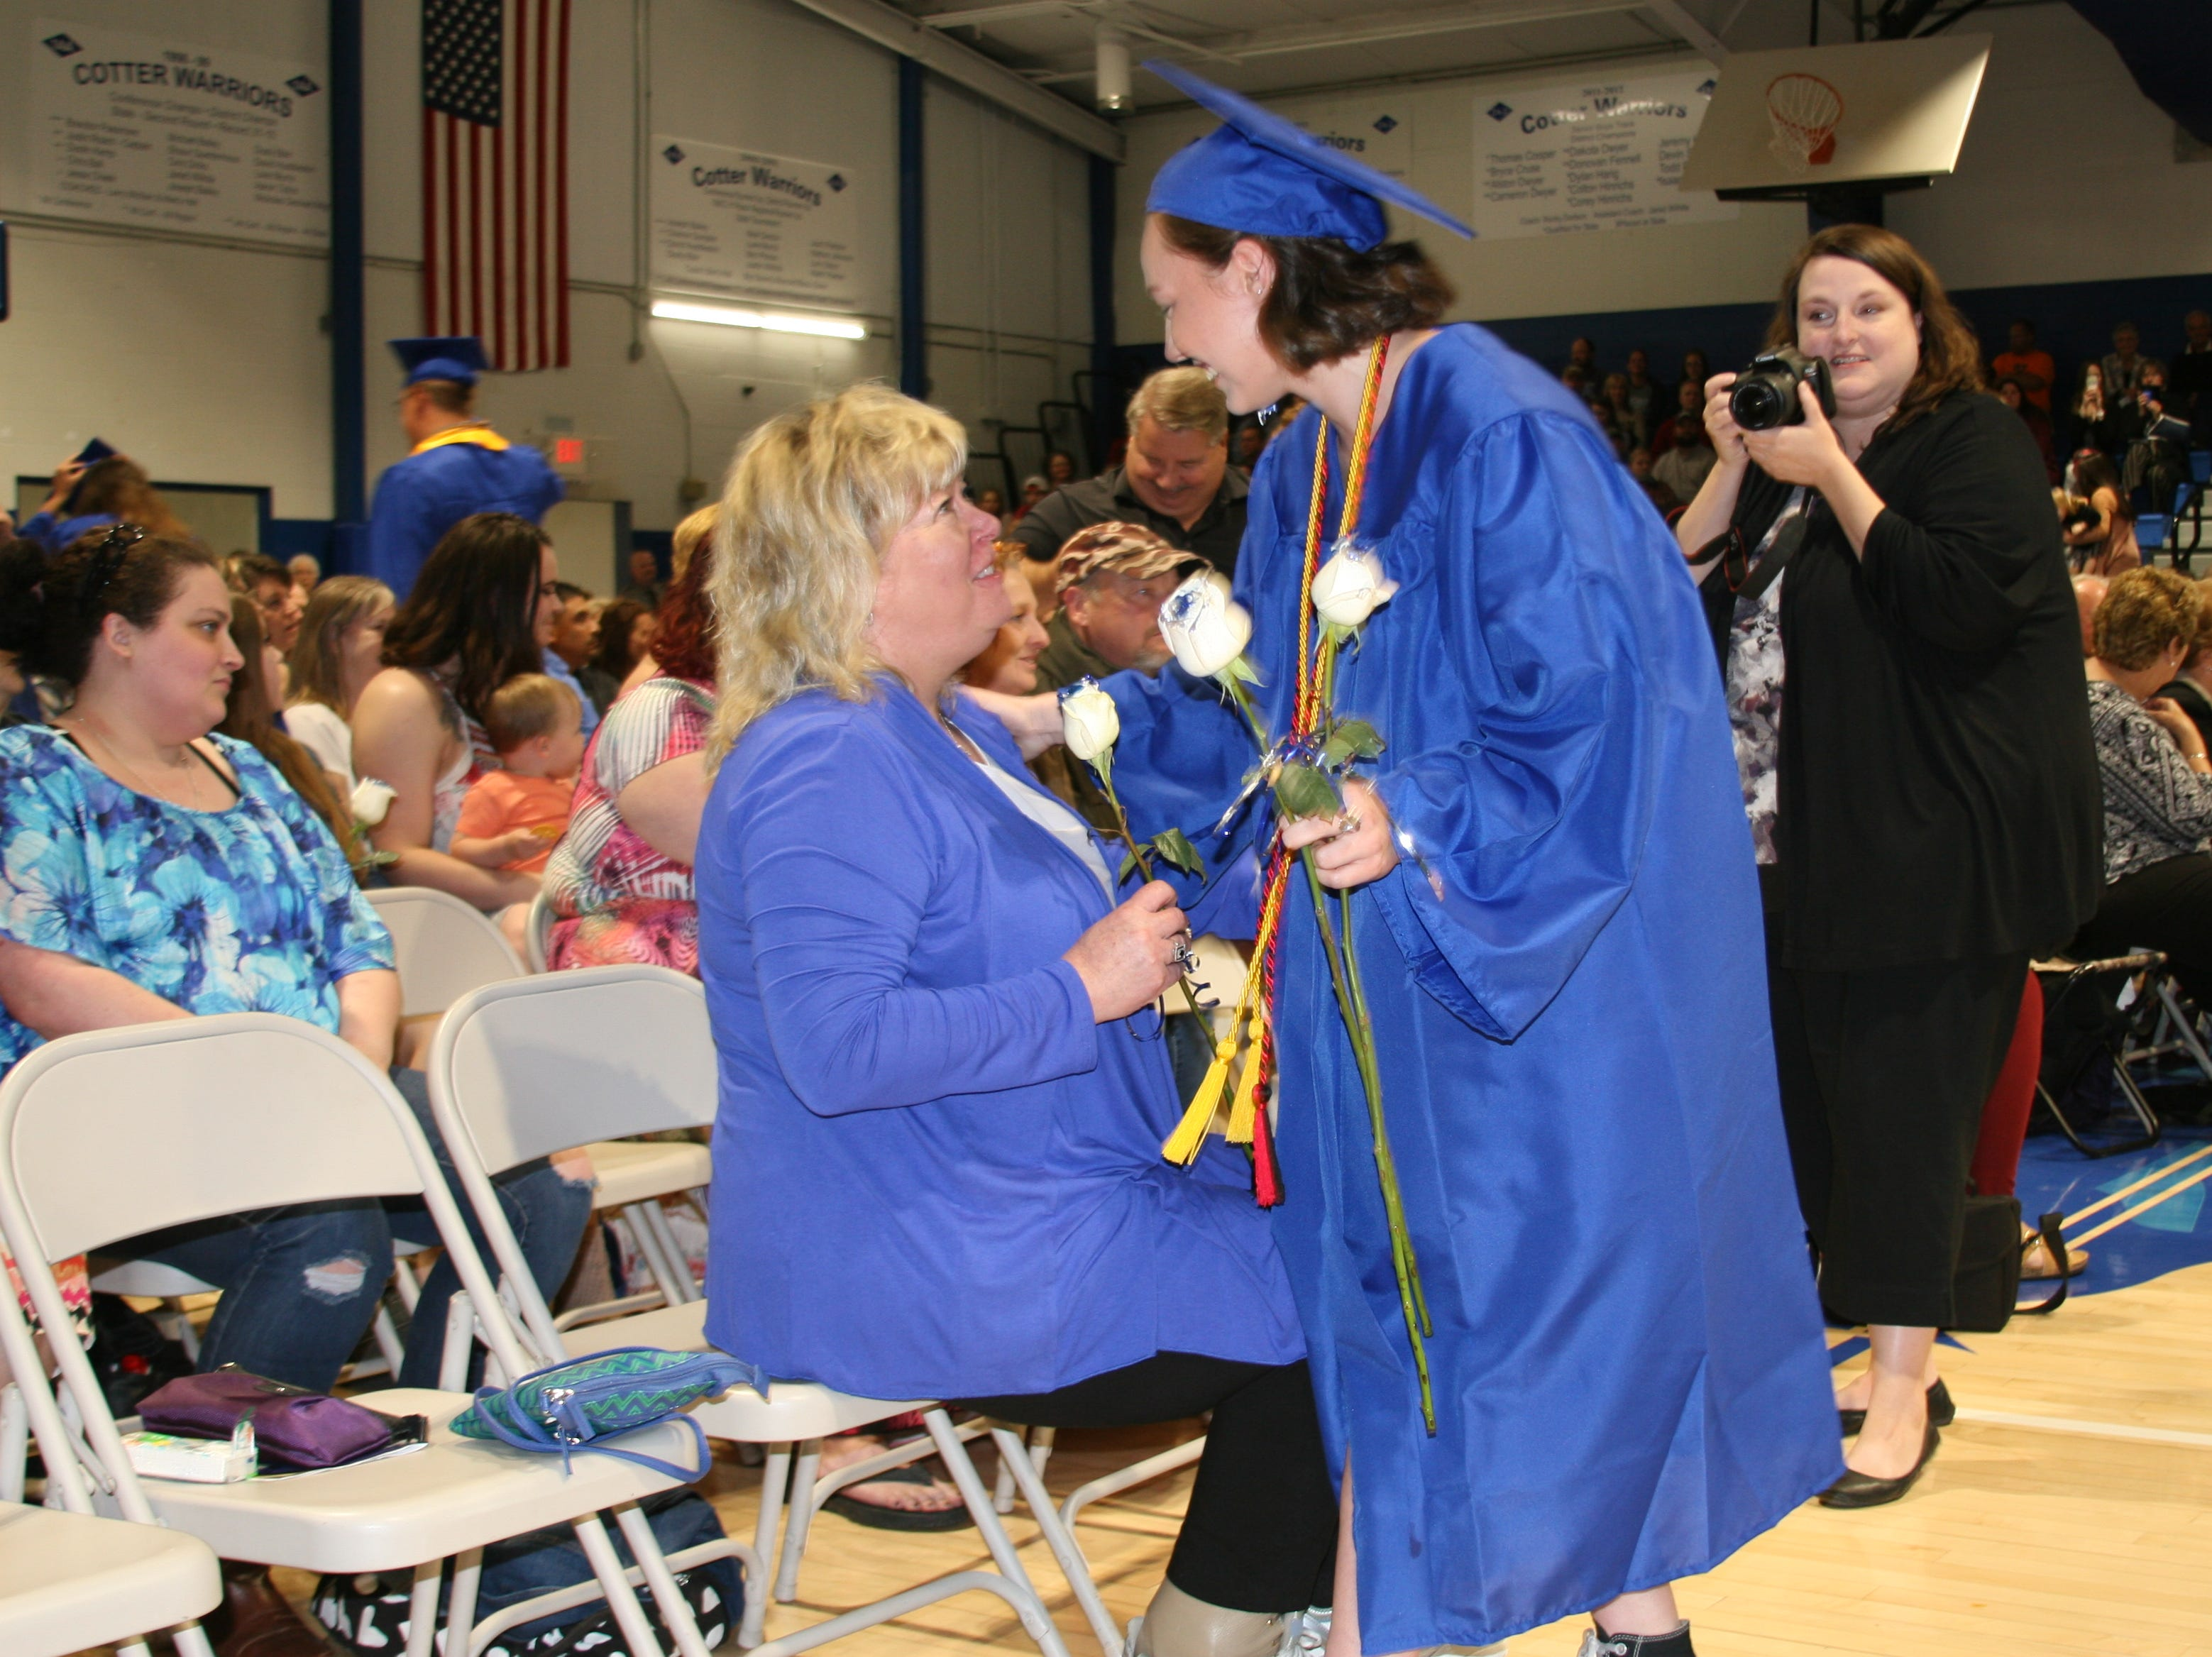 Cotter High School English teacher Sandra Wilhite received a blue and silver rose from a grateful student as part of the presentation of the flowers portion of Saturday night's graduation ceremony.